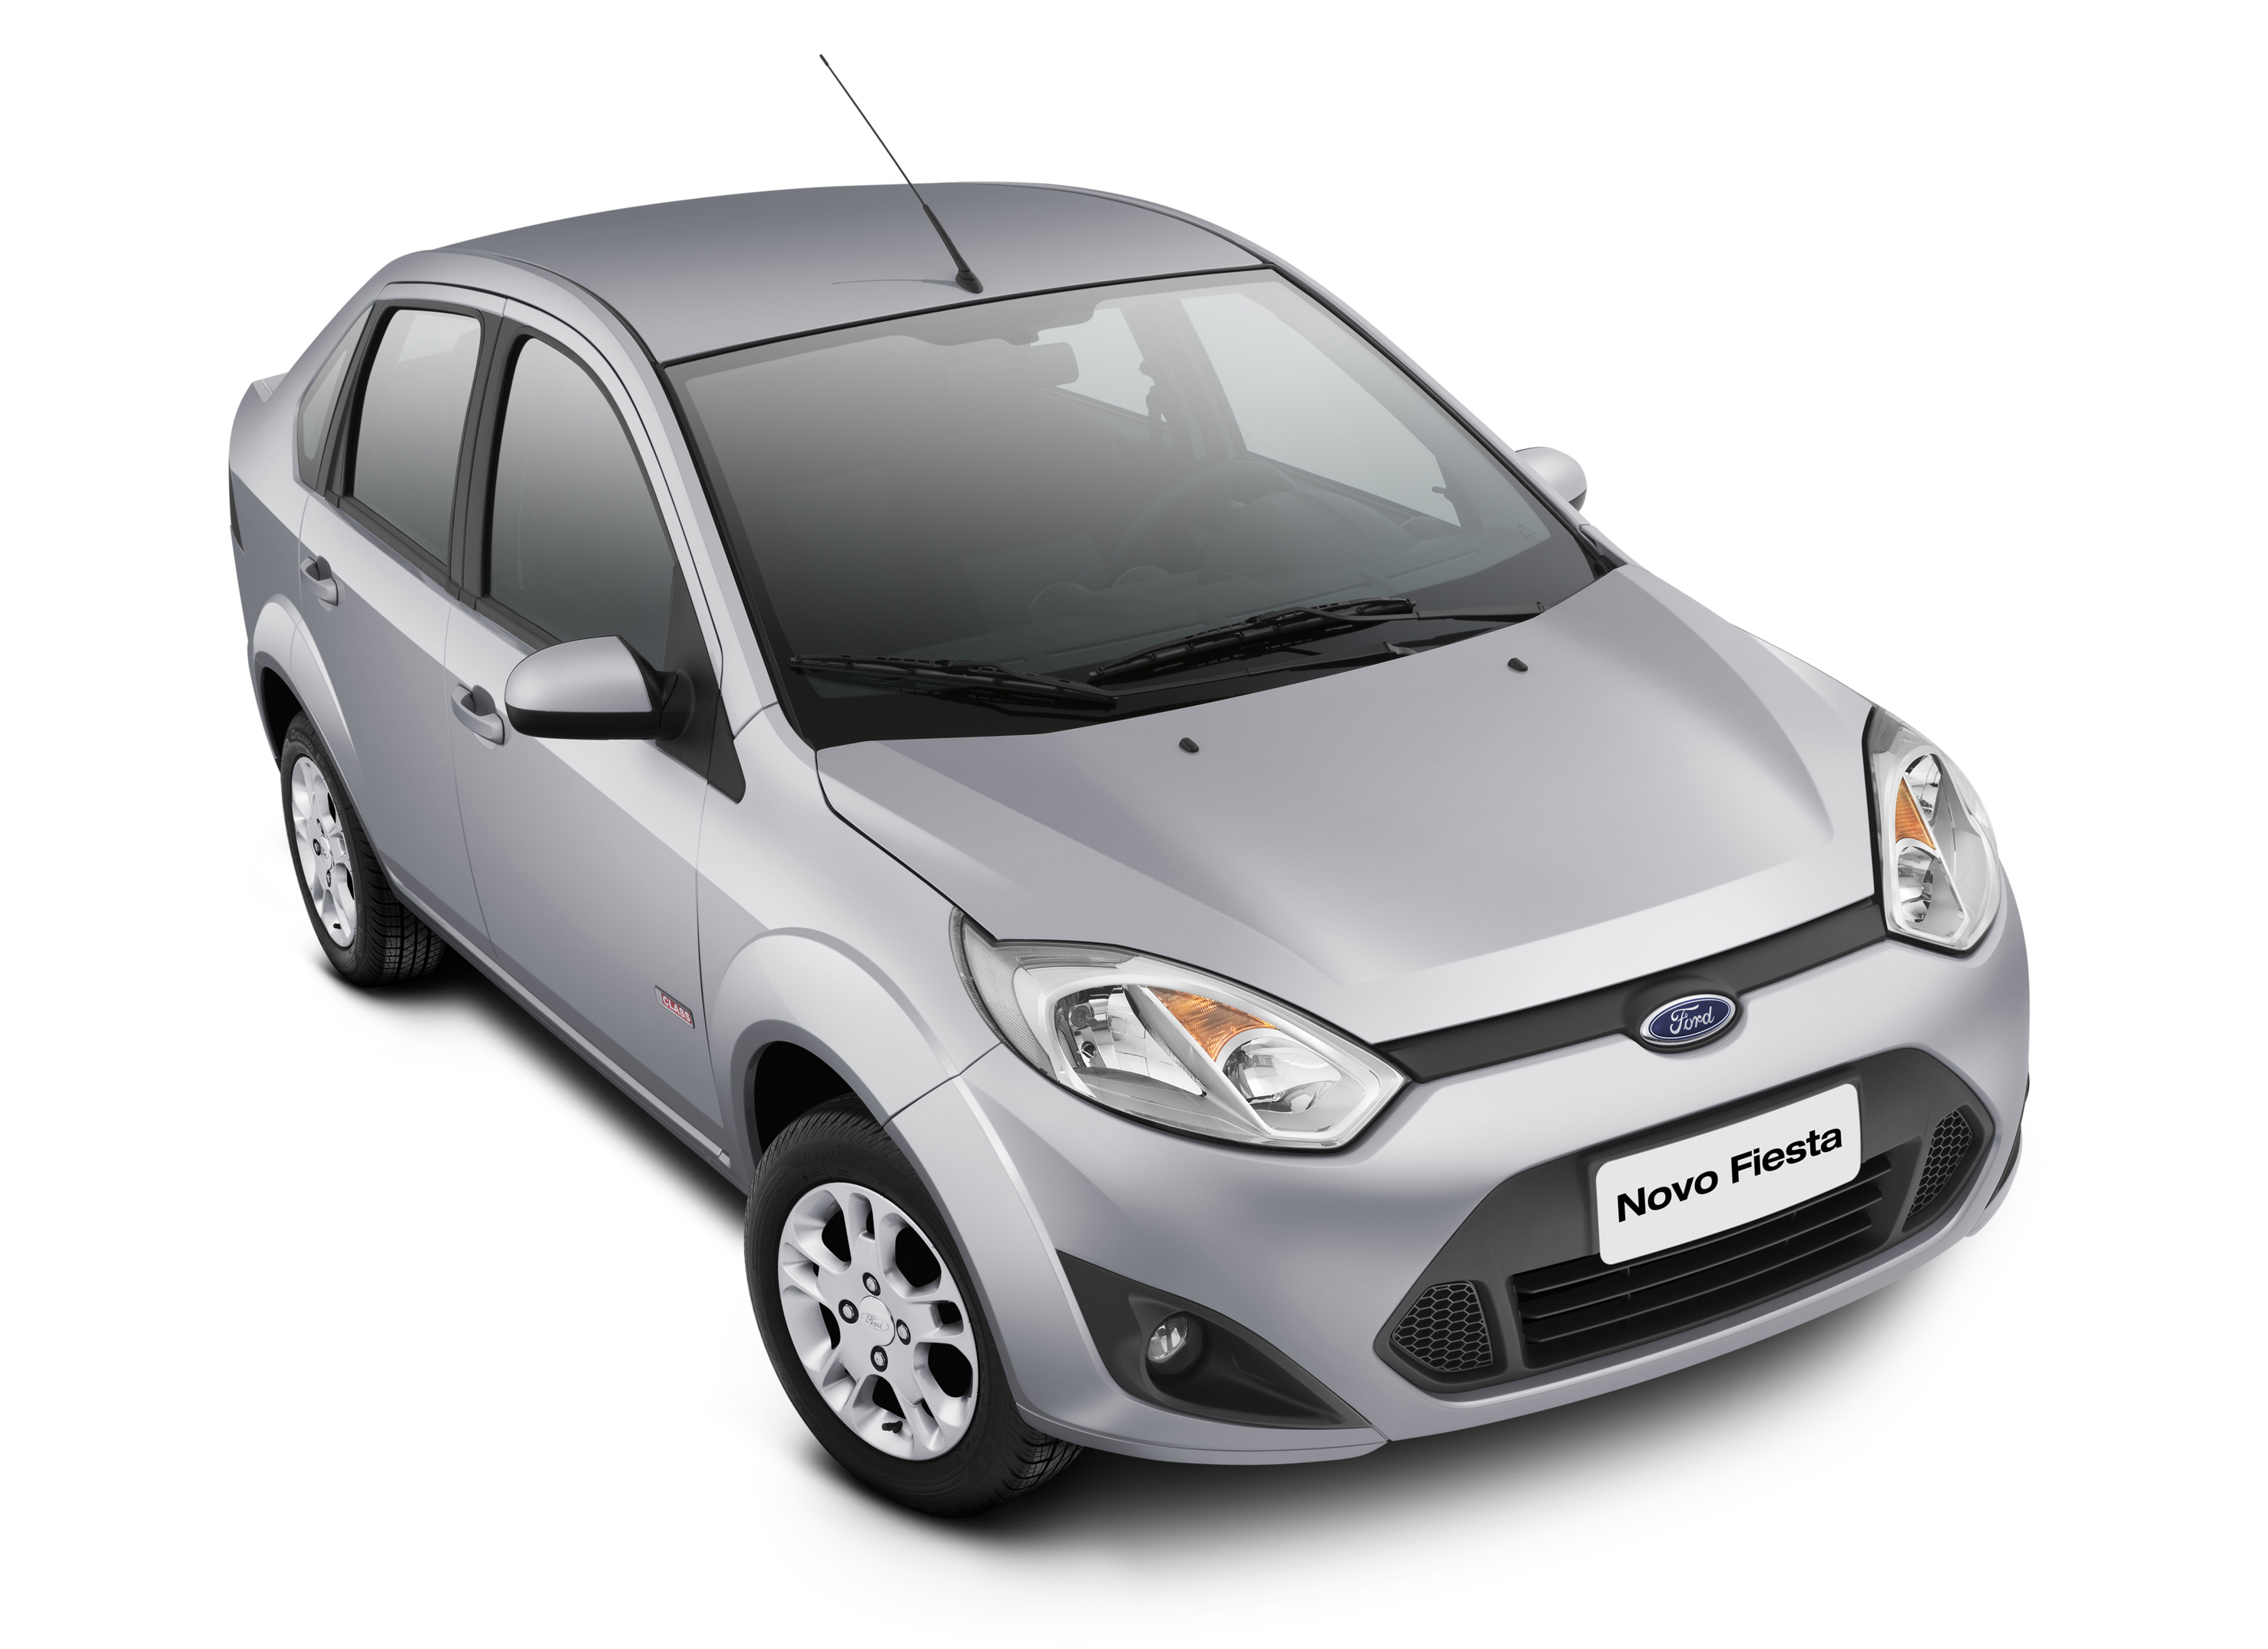 ford fiesta 2011 08 all the cars. Black Bedroom Furniture Sets. Home Design Ideas